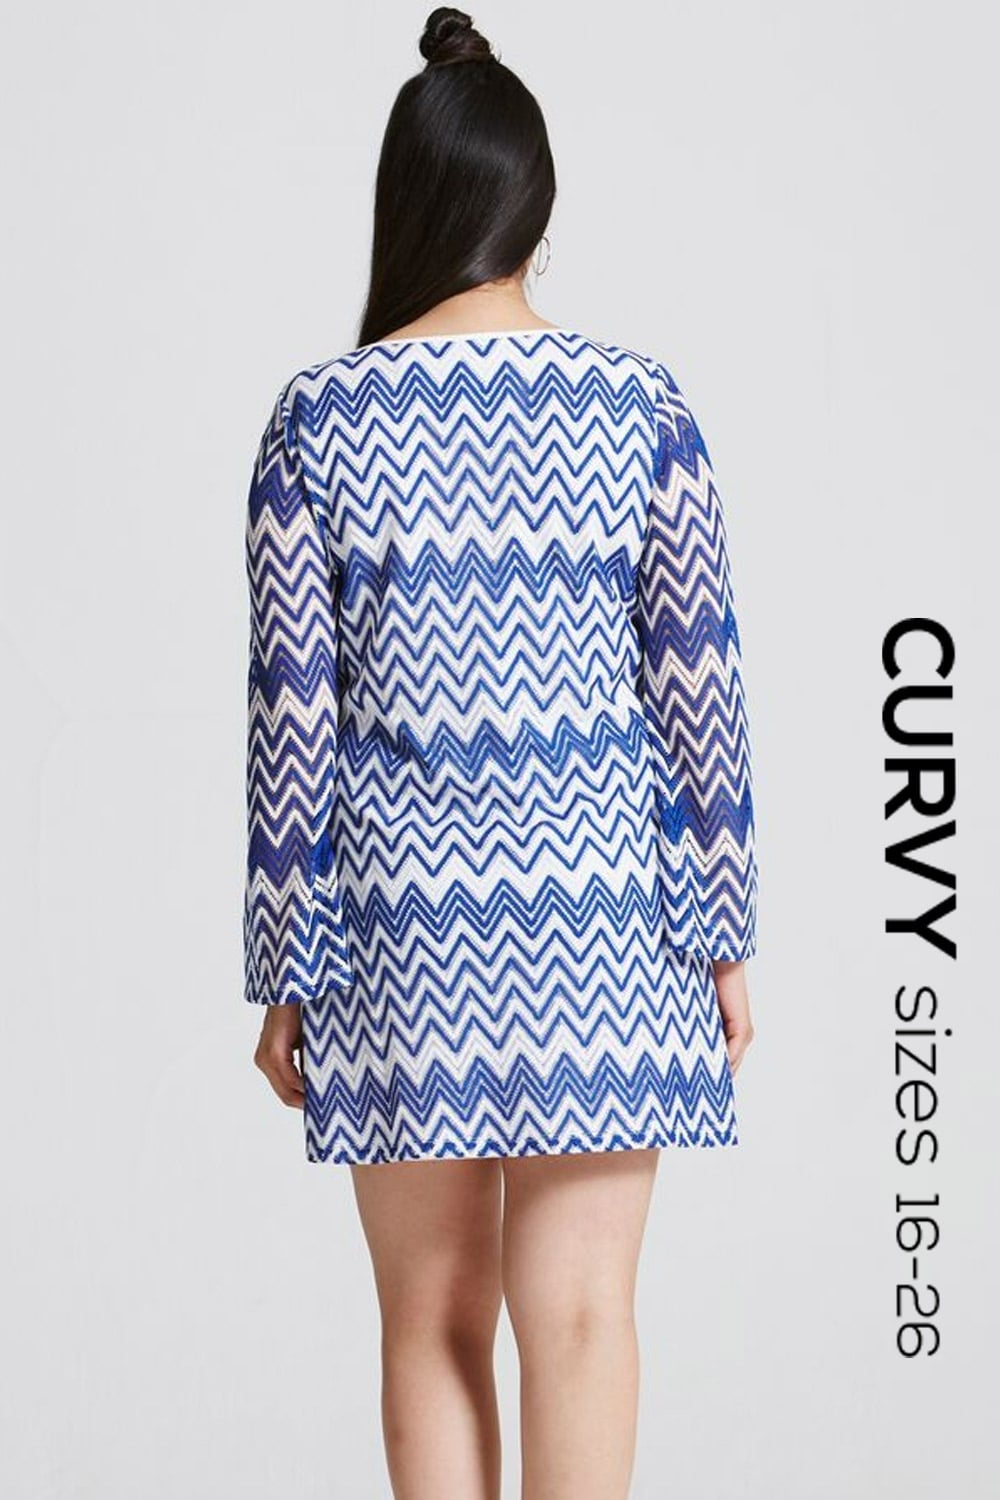 Find great deals on eBay for navy white chevron dress. Shop with confidence.